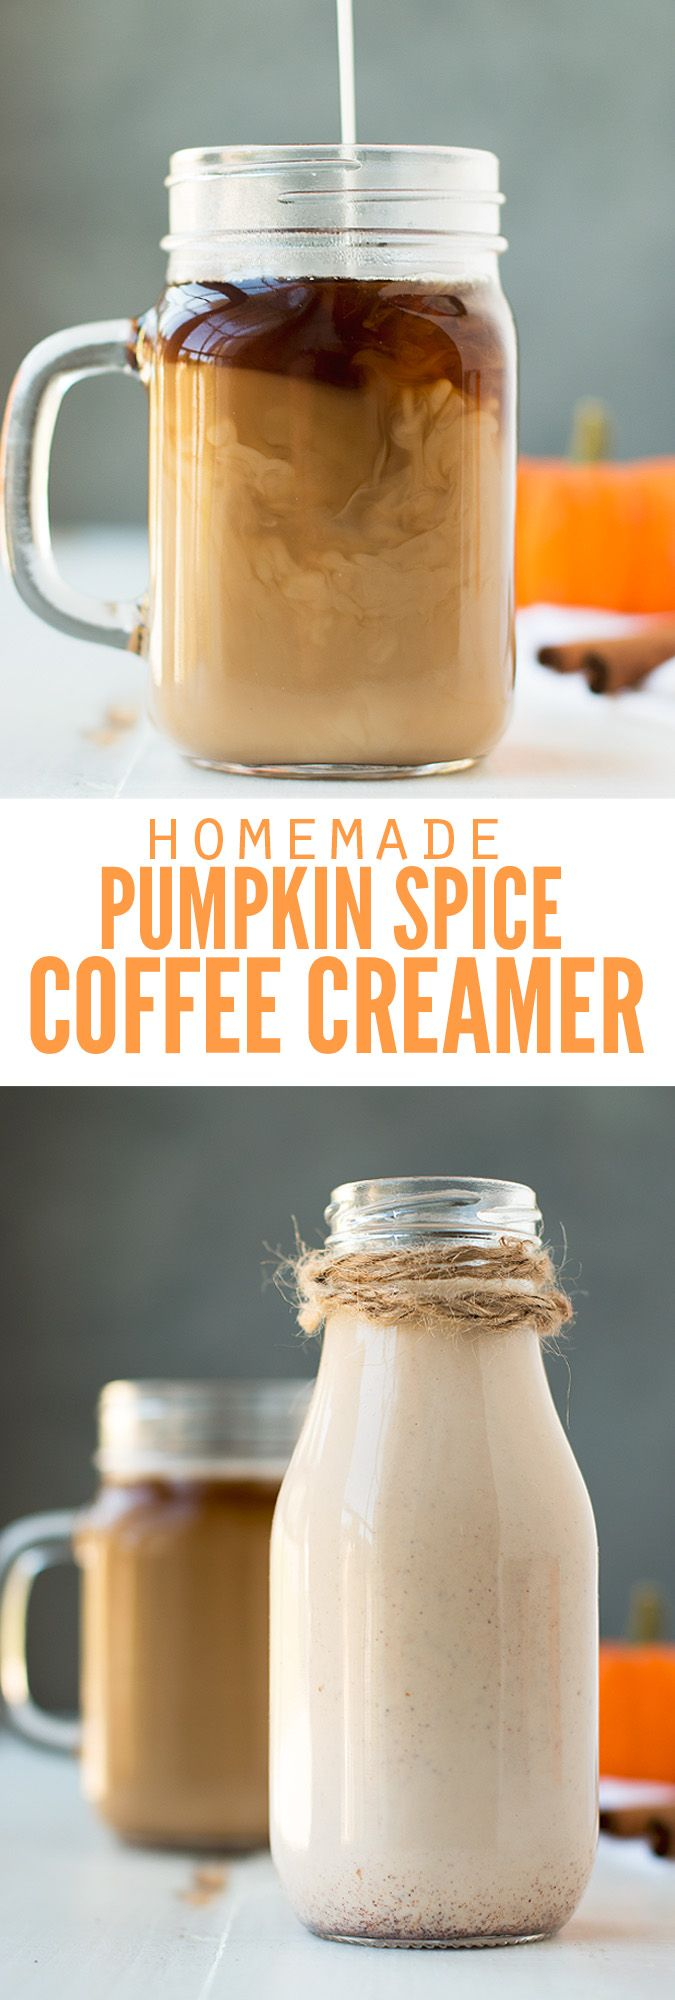 Homemade pumpkin spice coffee creamer that's actually healthy and made with real pumpkin and no refined sugar. So good, and much healthier than the powder! :: DontWastetheCrumbs.com